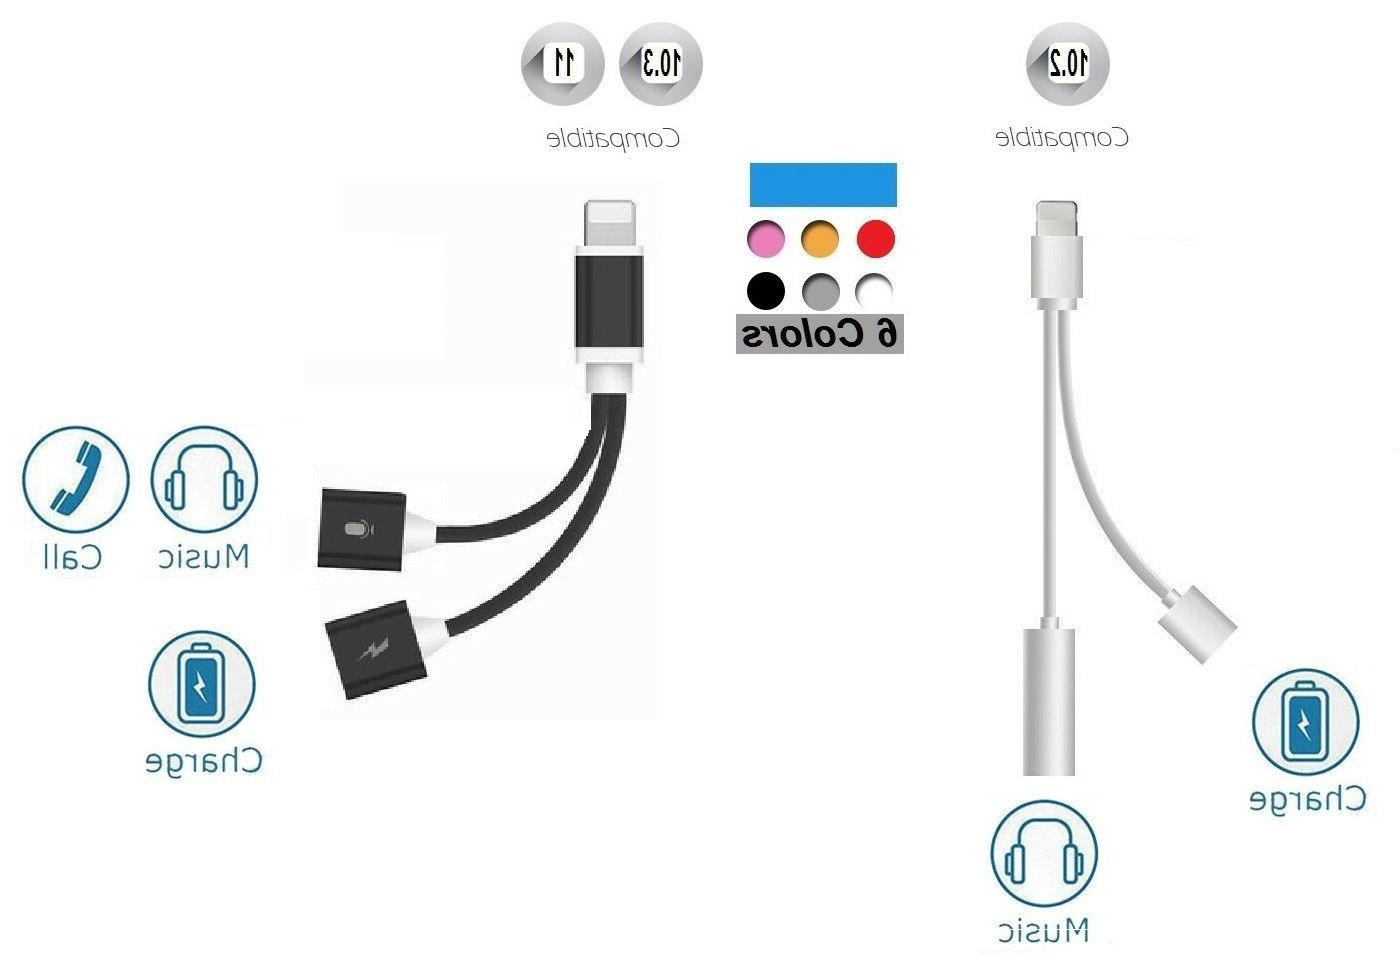 2in1 Lightning to 3.5mm Audio Headphone Adapter Charger